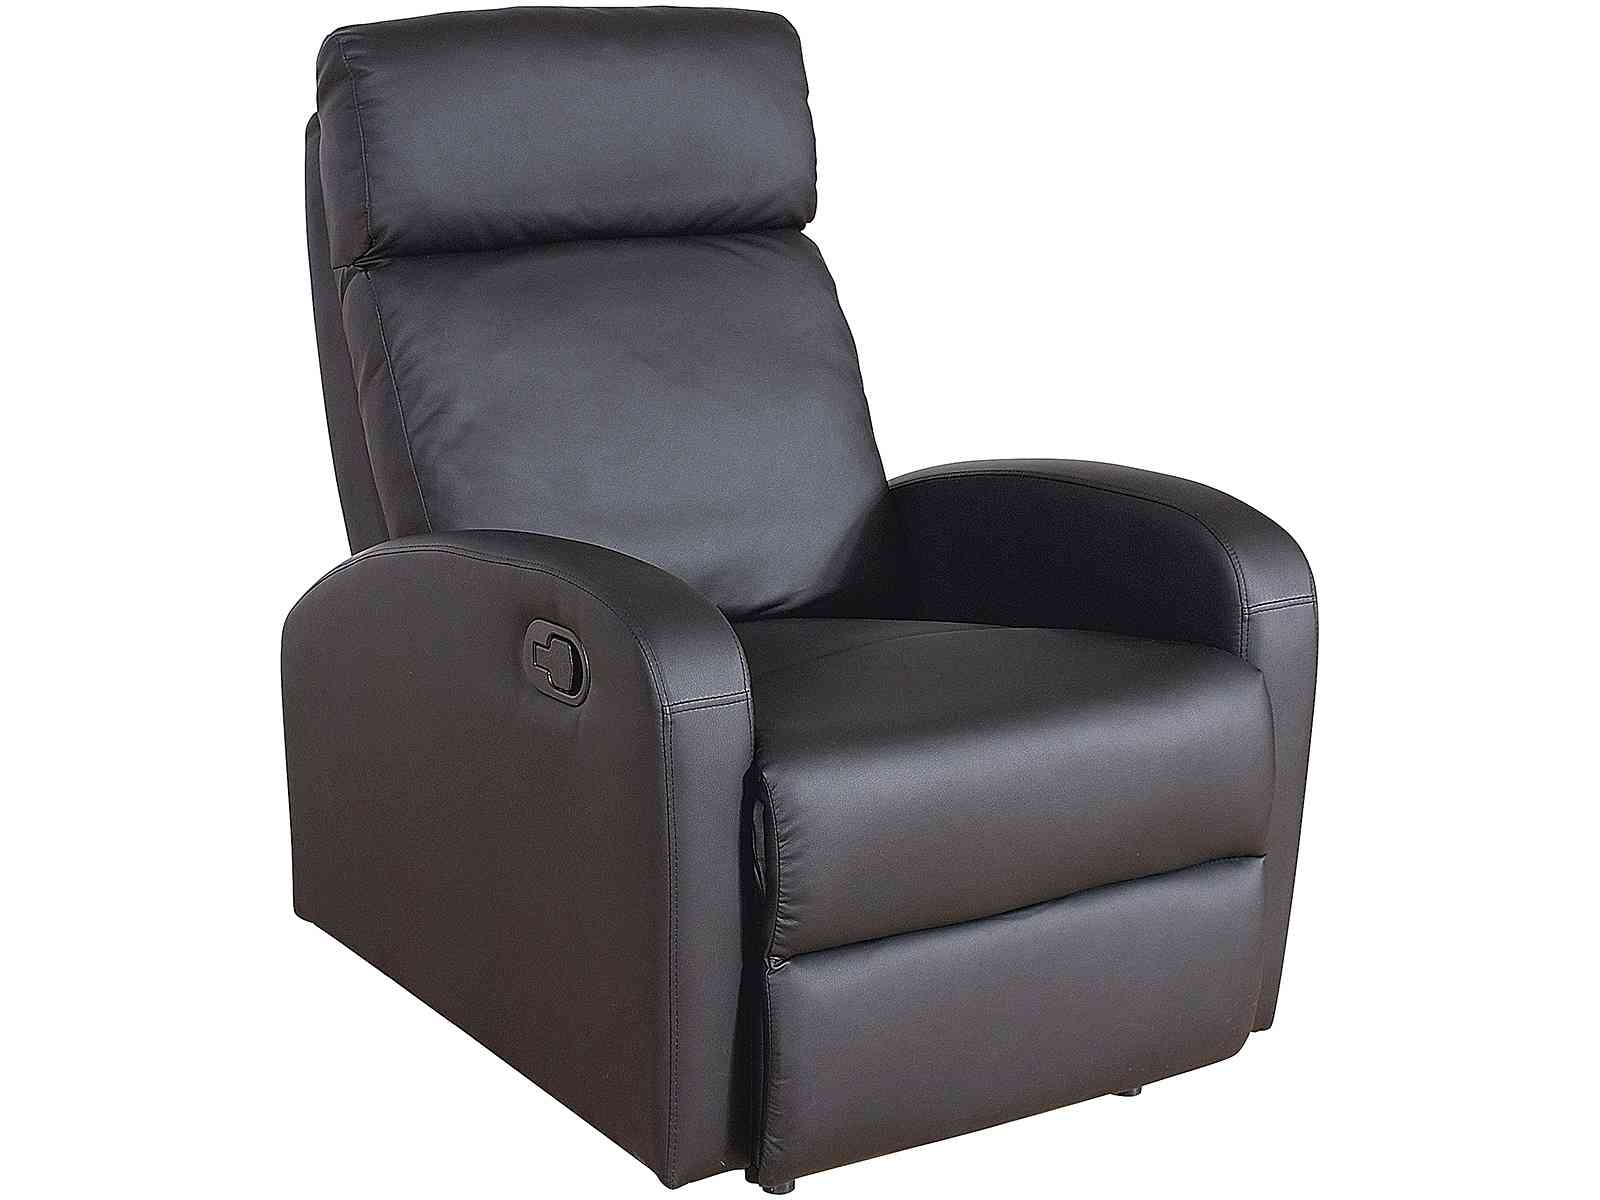 GFW The Furniture Warehouse Nevada Recliner Chair : nevada recliner blk 1 w800h6002x from www.gfwlimited.co.uk size 1600 x 1200 jpeg 66kB